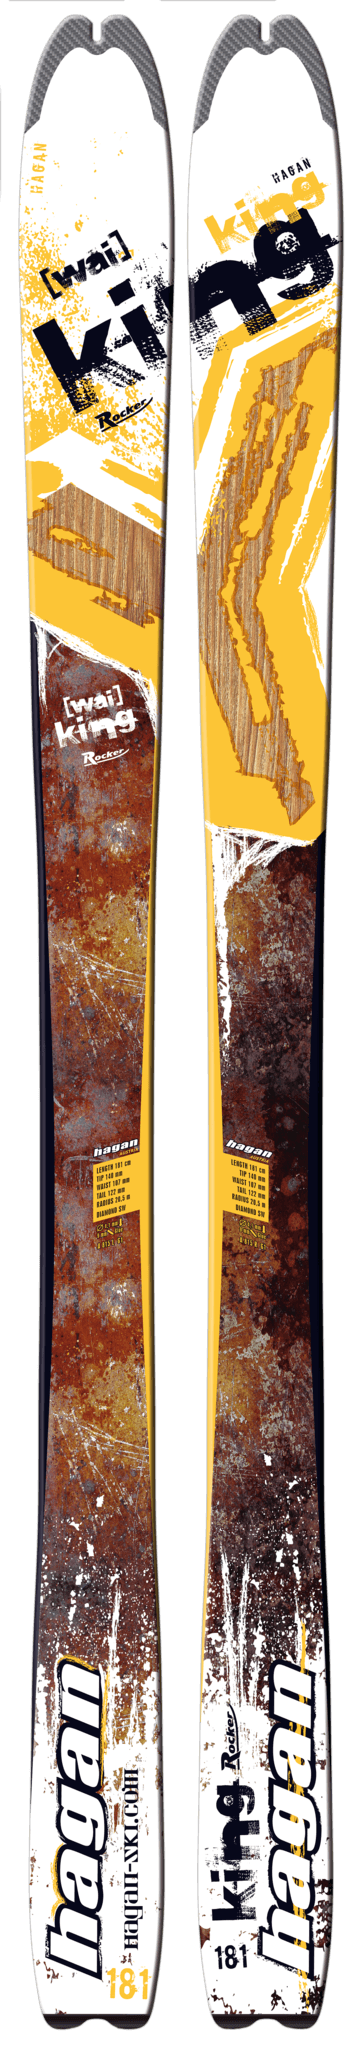 Y-King 2016, Skis - Hagan Ski Mountaineering